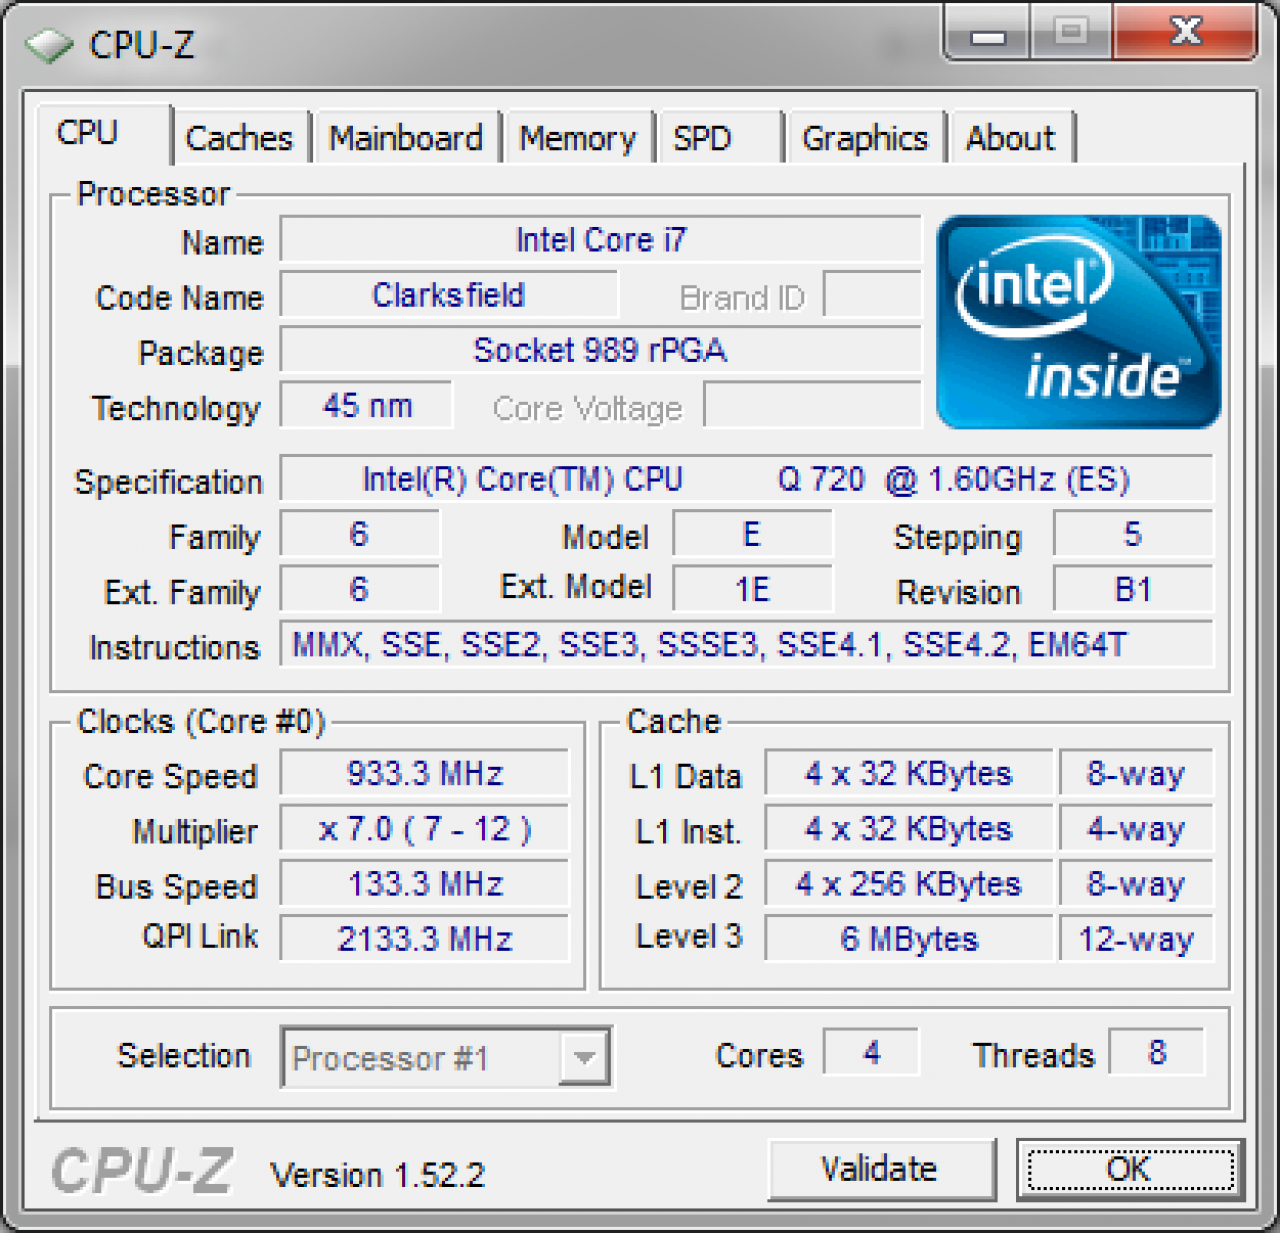 Intel Core i7 Mobile: Nehalem CPU for notebooks - first